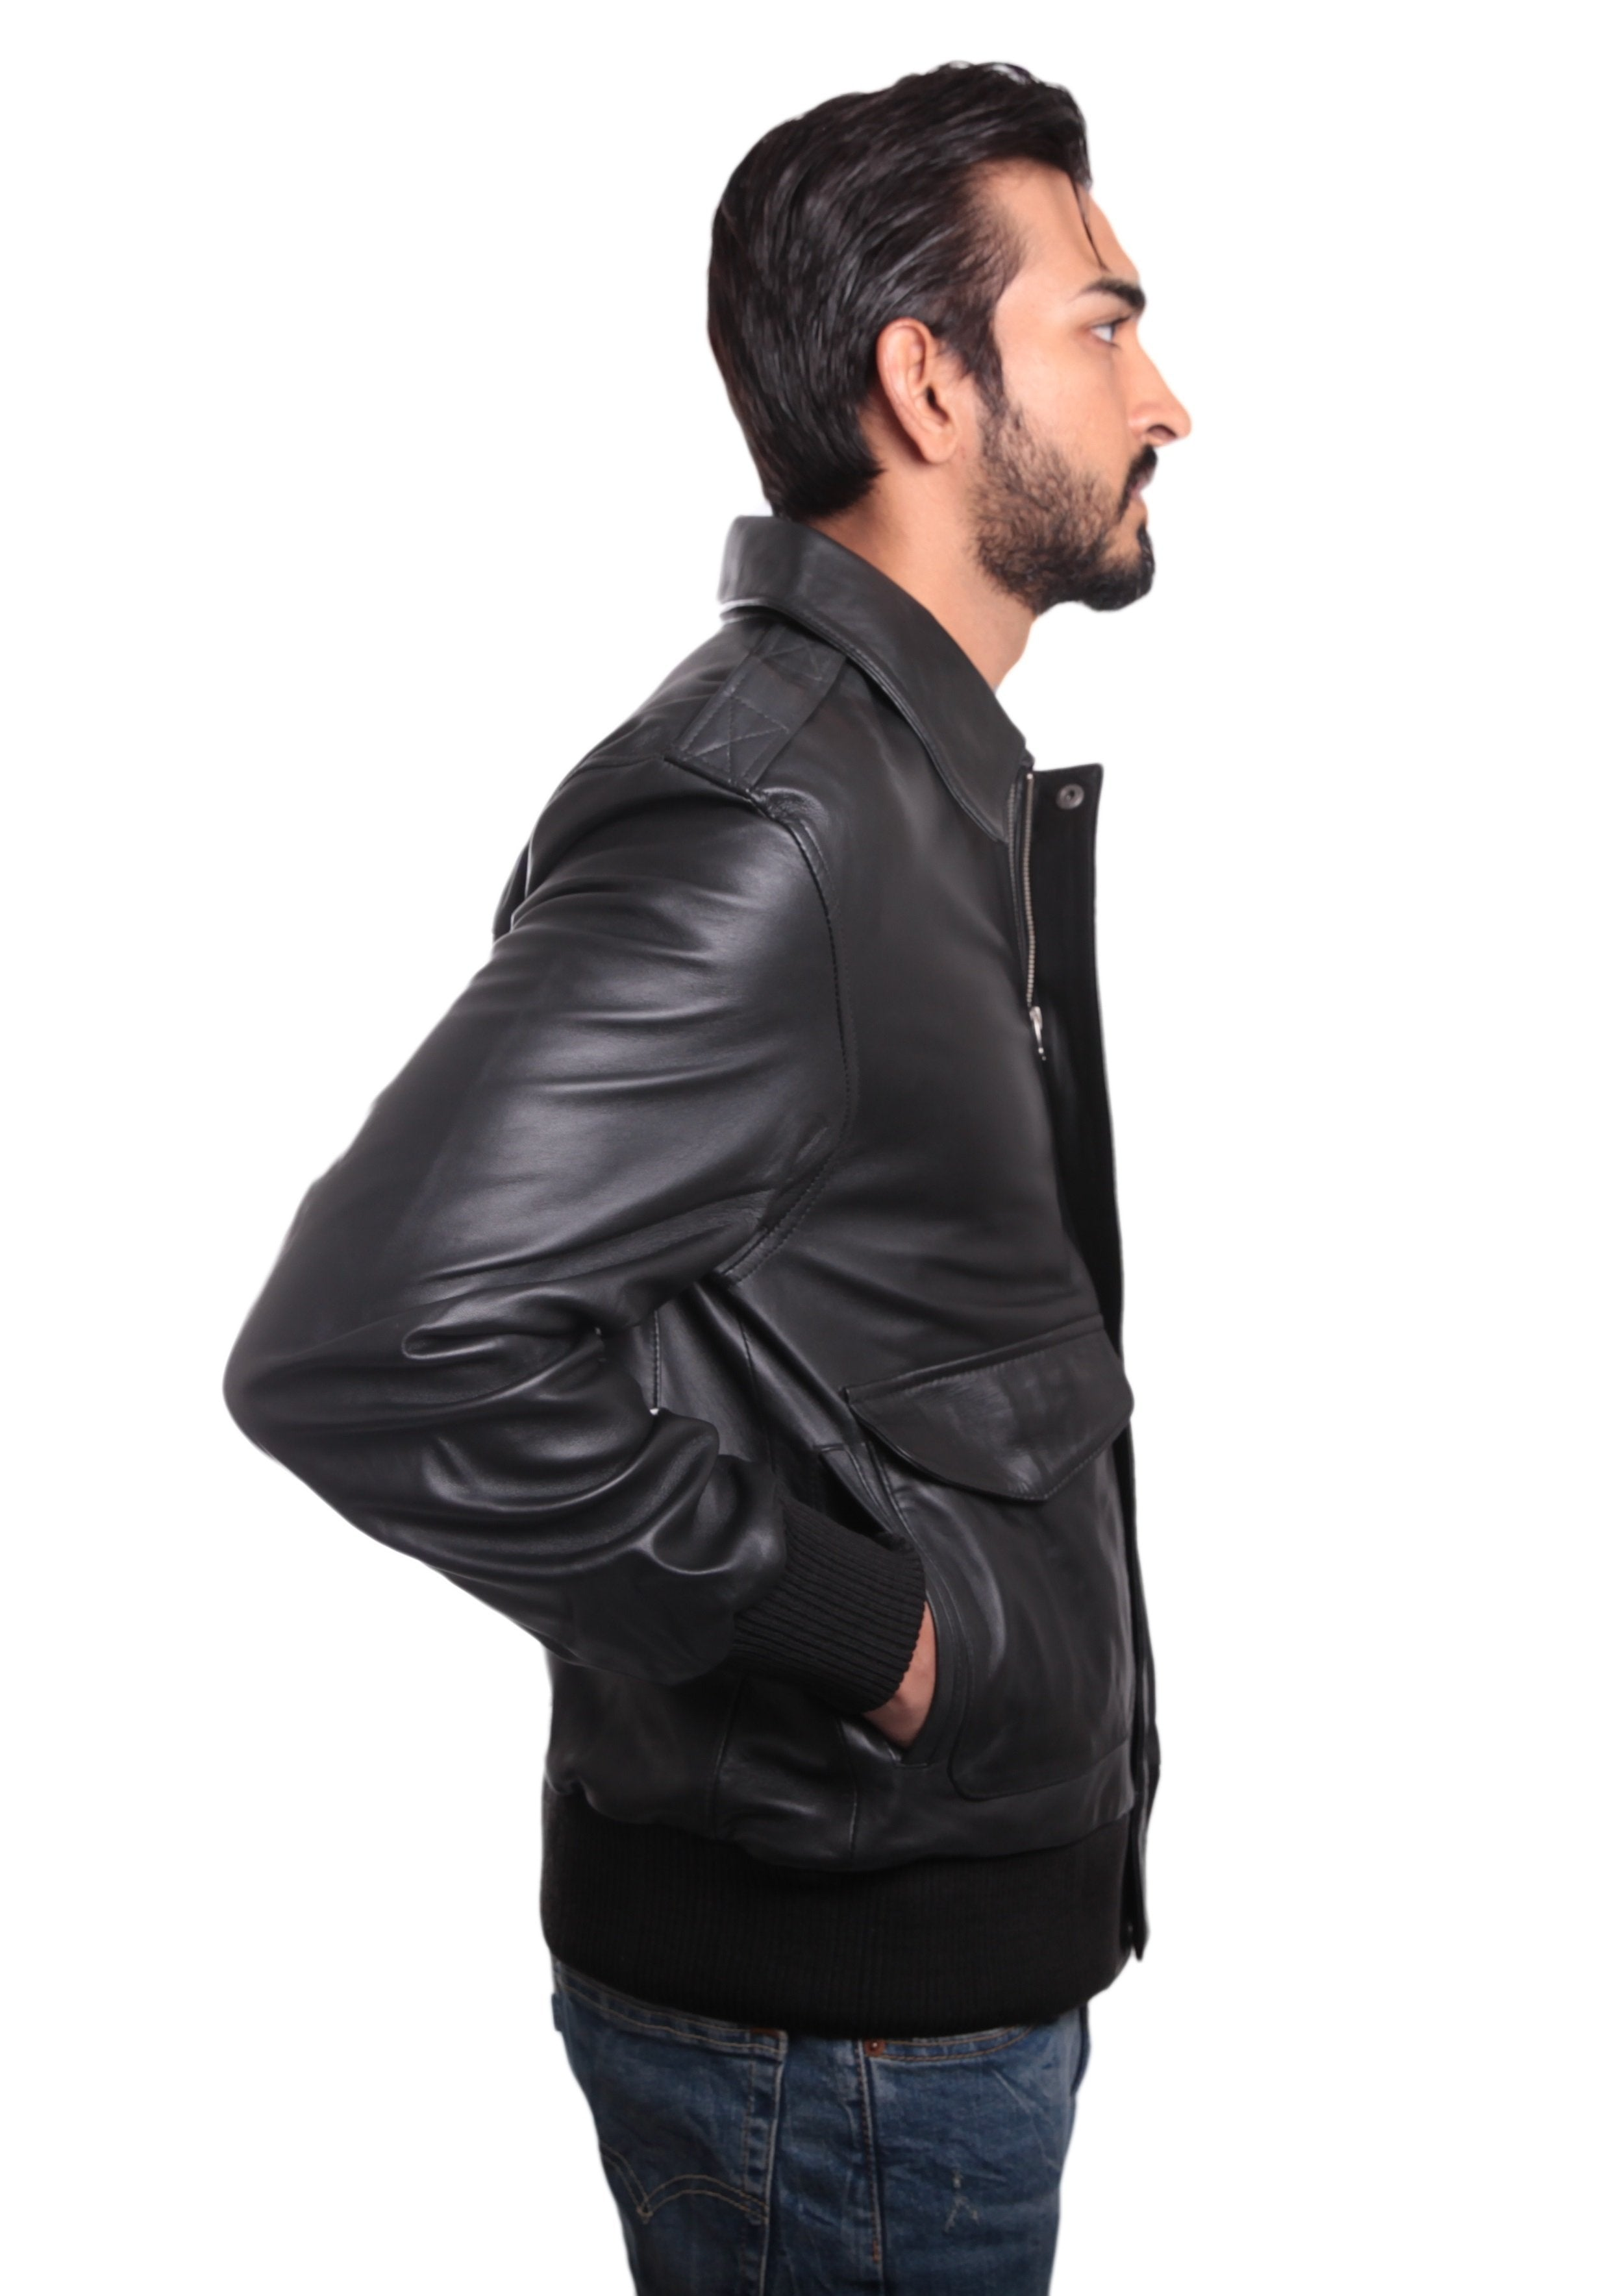 Leather Jacket - Houston Mens Leather Bomber Jacket